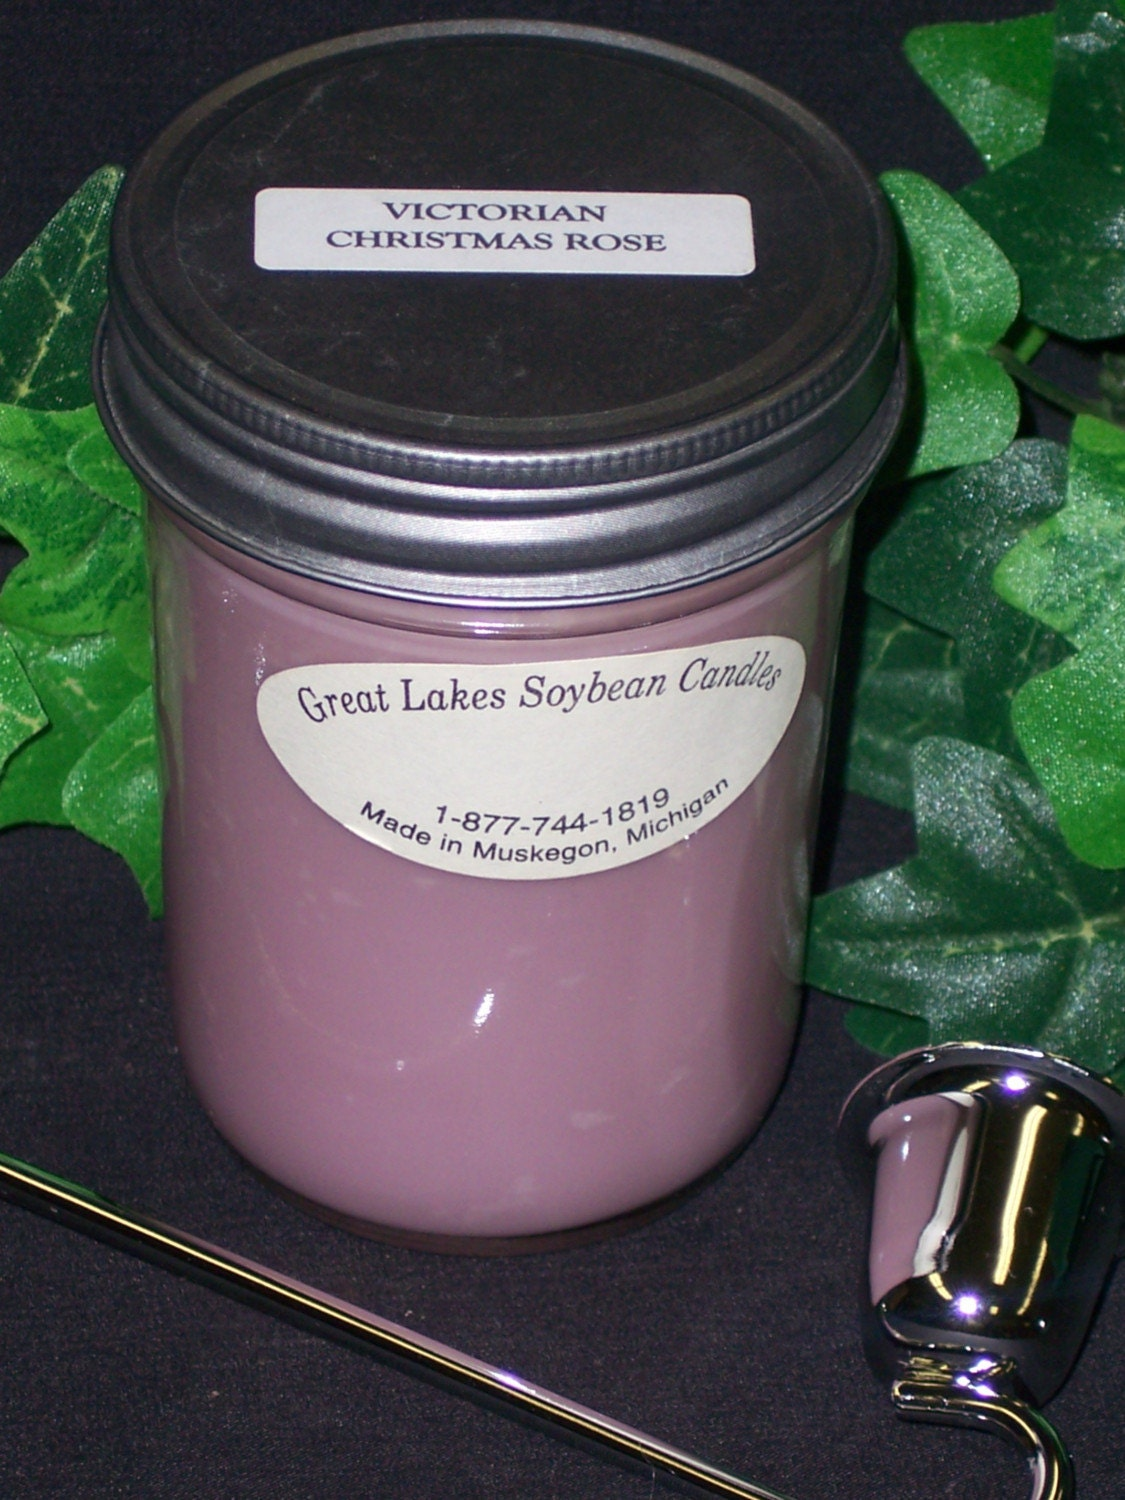 GREAT LAKES SOYBEAN CANDLES VICTORIAN ROSE 8 OZ JAR THIS IS THE STRONGEST ROSE SCENT THAT I CARRY IF YOU LIKE ROSE THIS IS FOR YOU